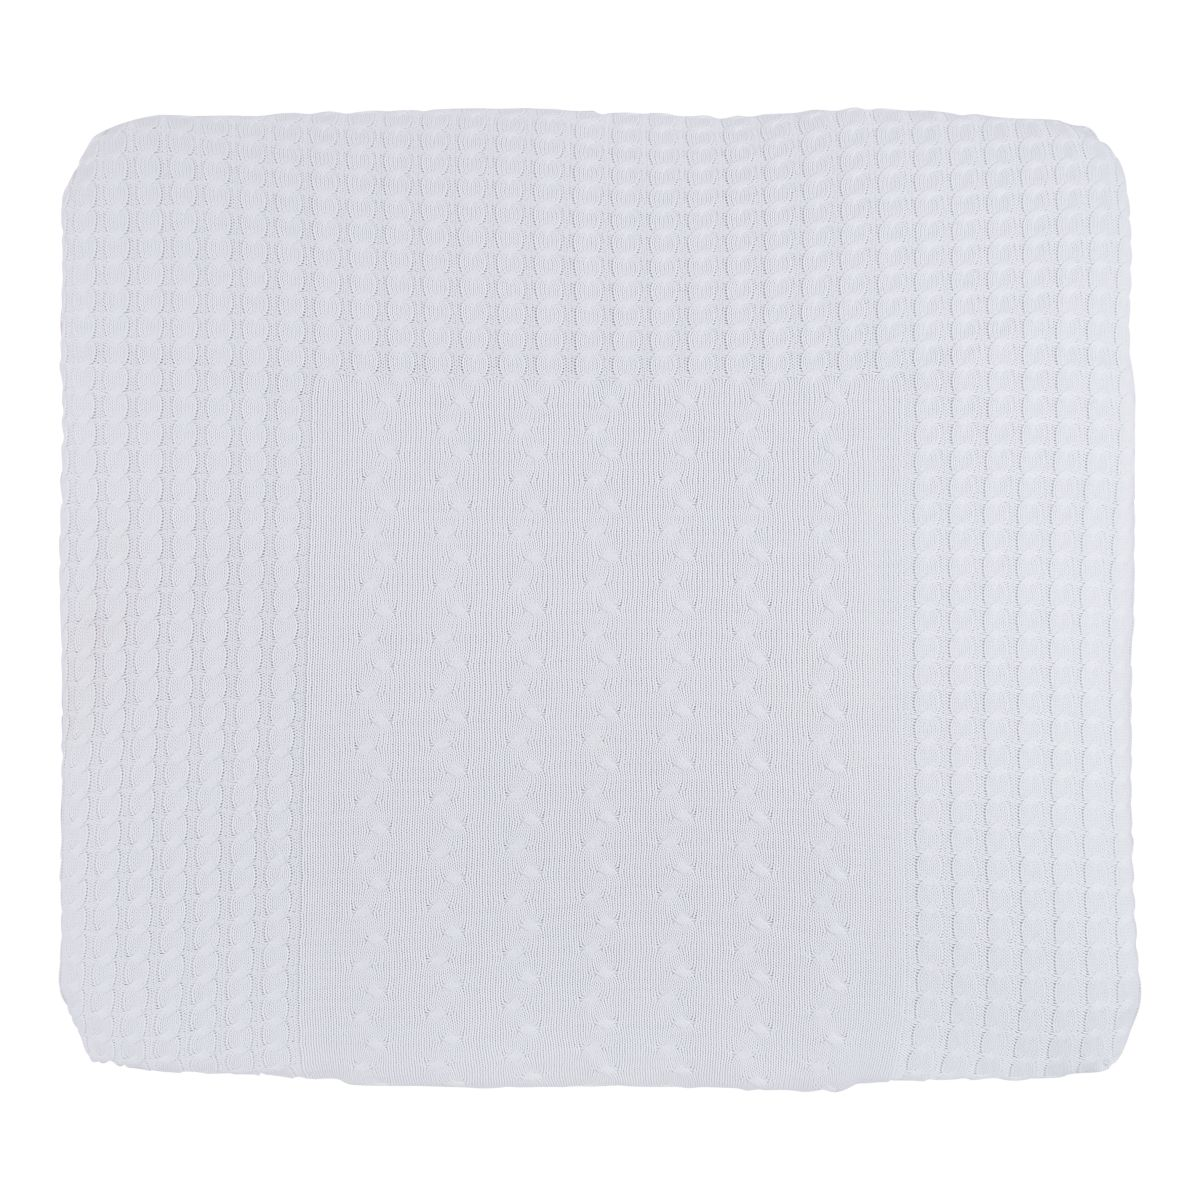 changing pad cover cable white 75x85